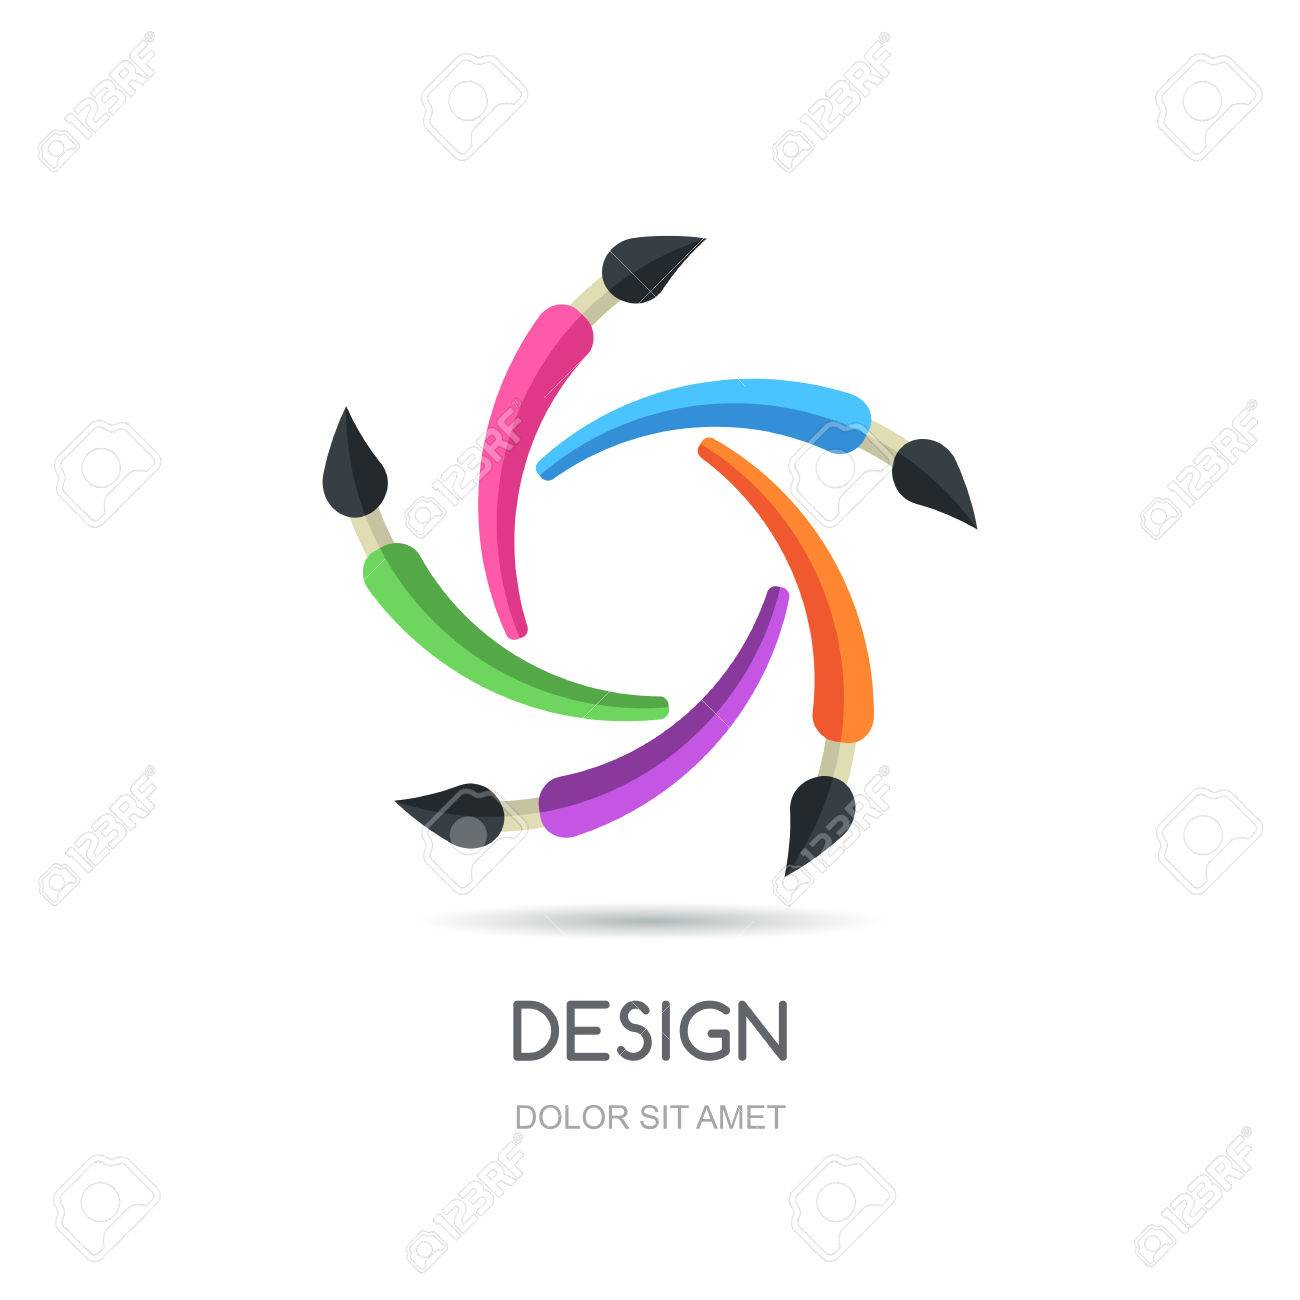 Creative logo designs